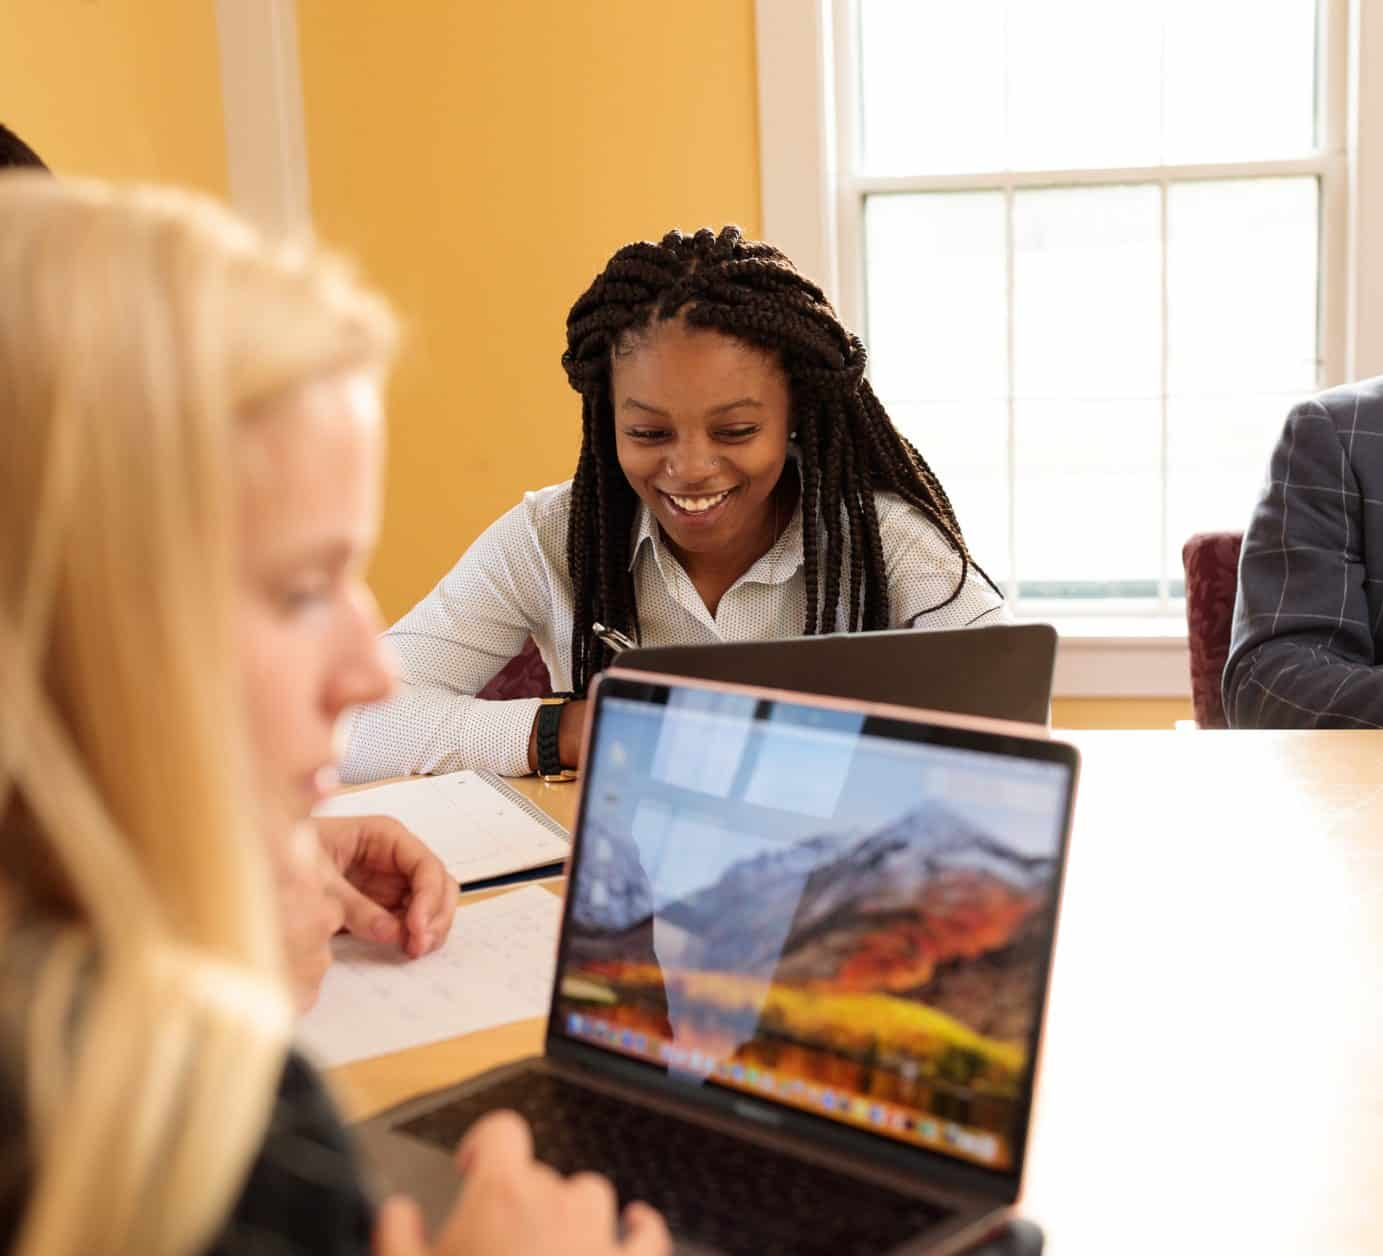 Female students, business technology and management, conference room, lap top, diversity